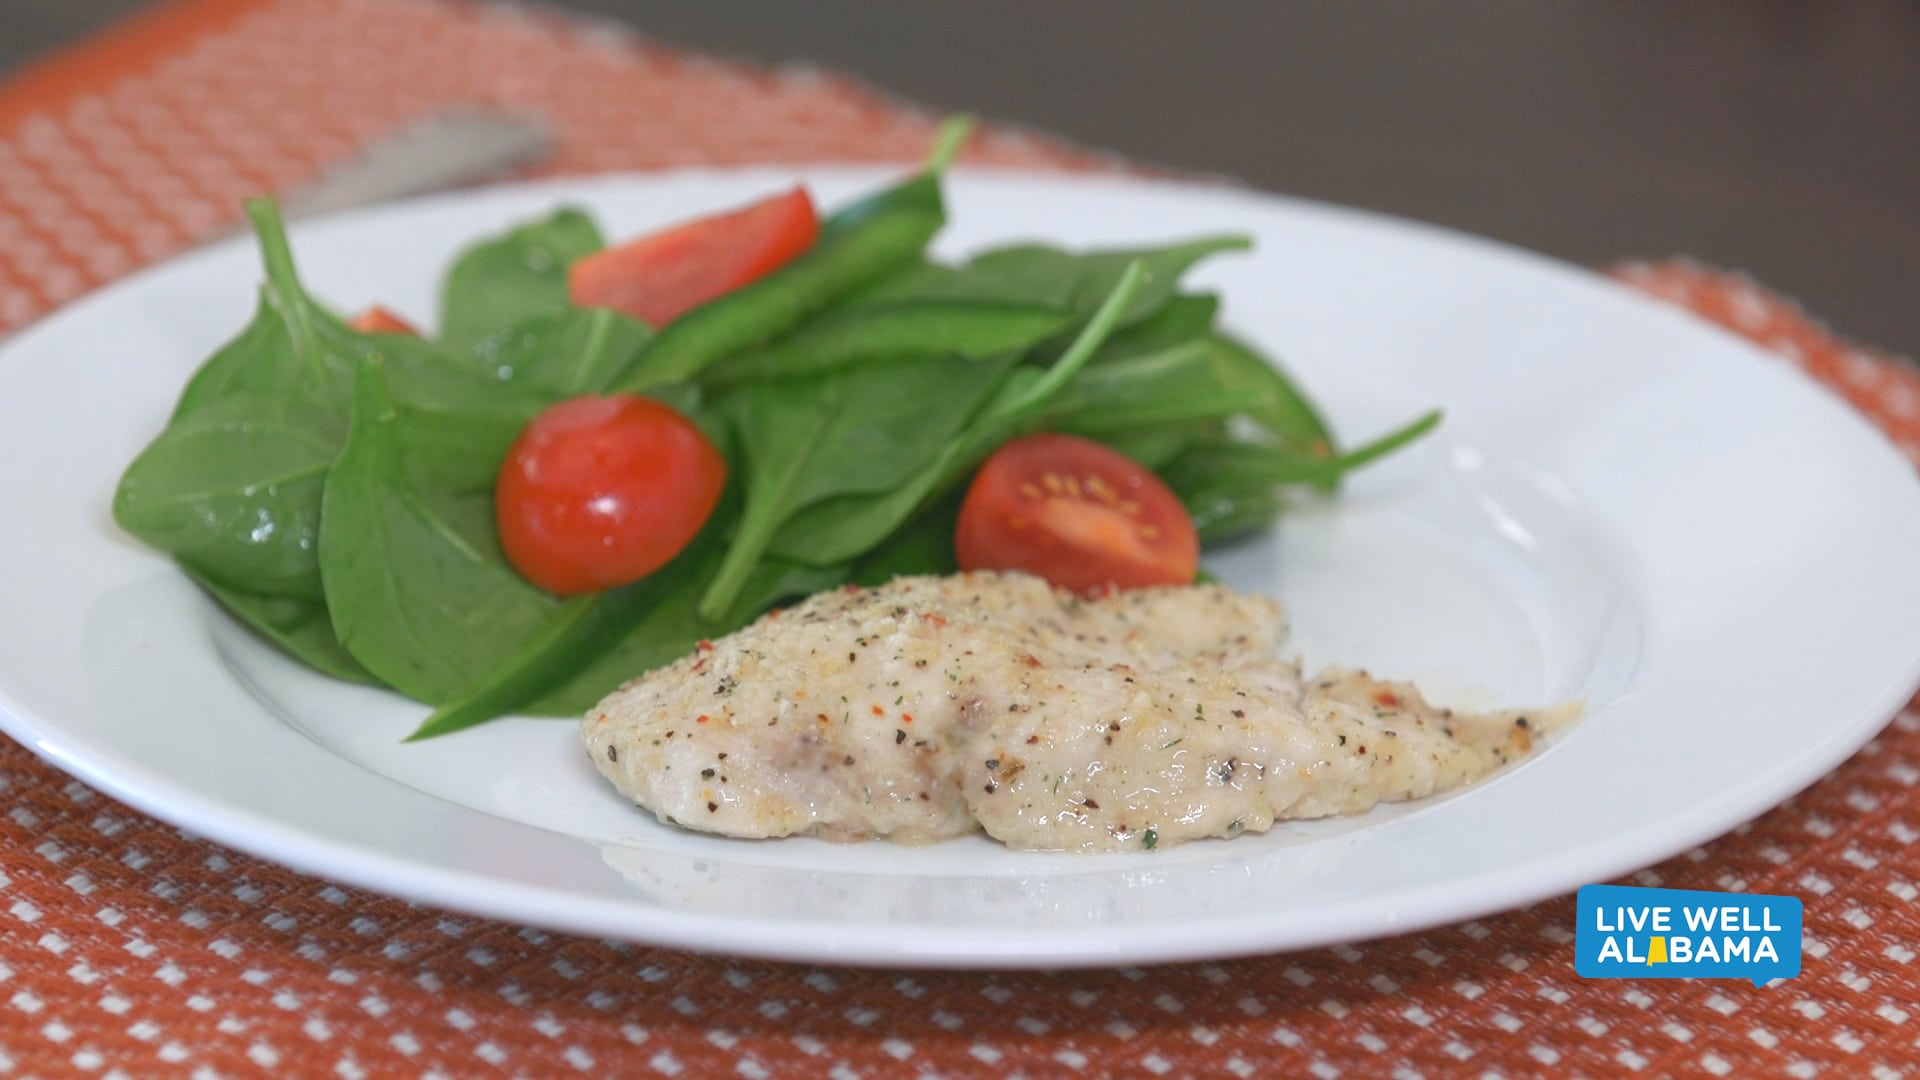 Live Well Parmesan Garlic Chicken